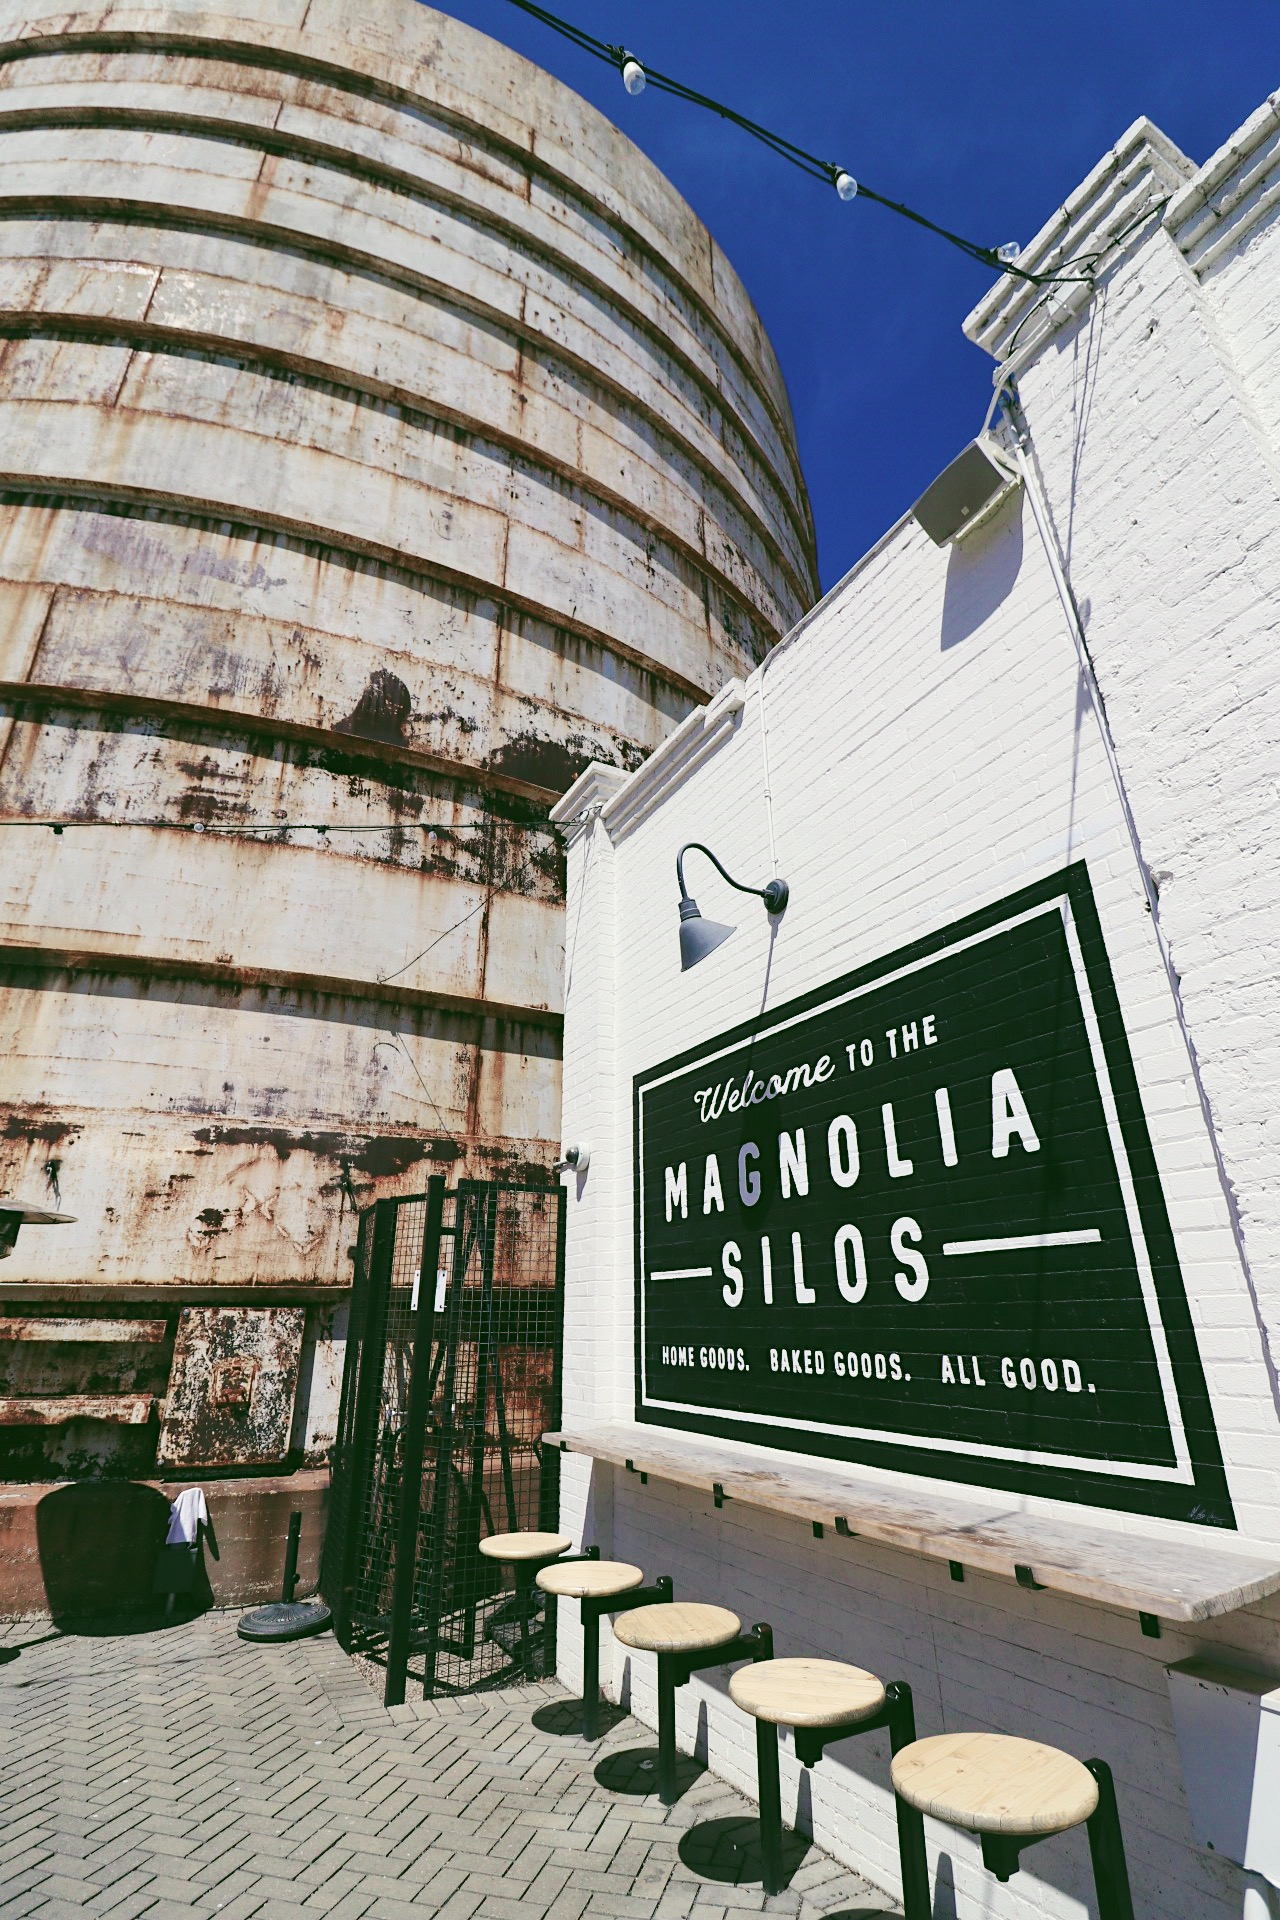 Magnolia A Day Trip To The Silos And Magnolia Table Discovering Atx